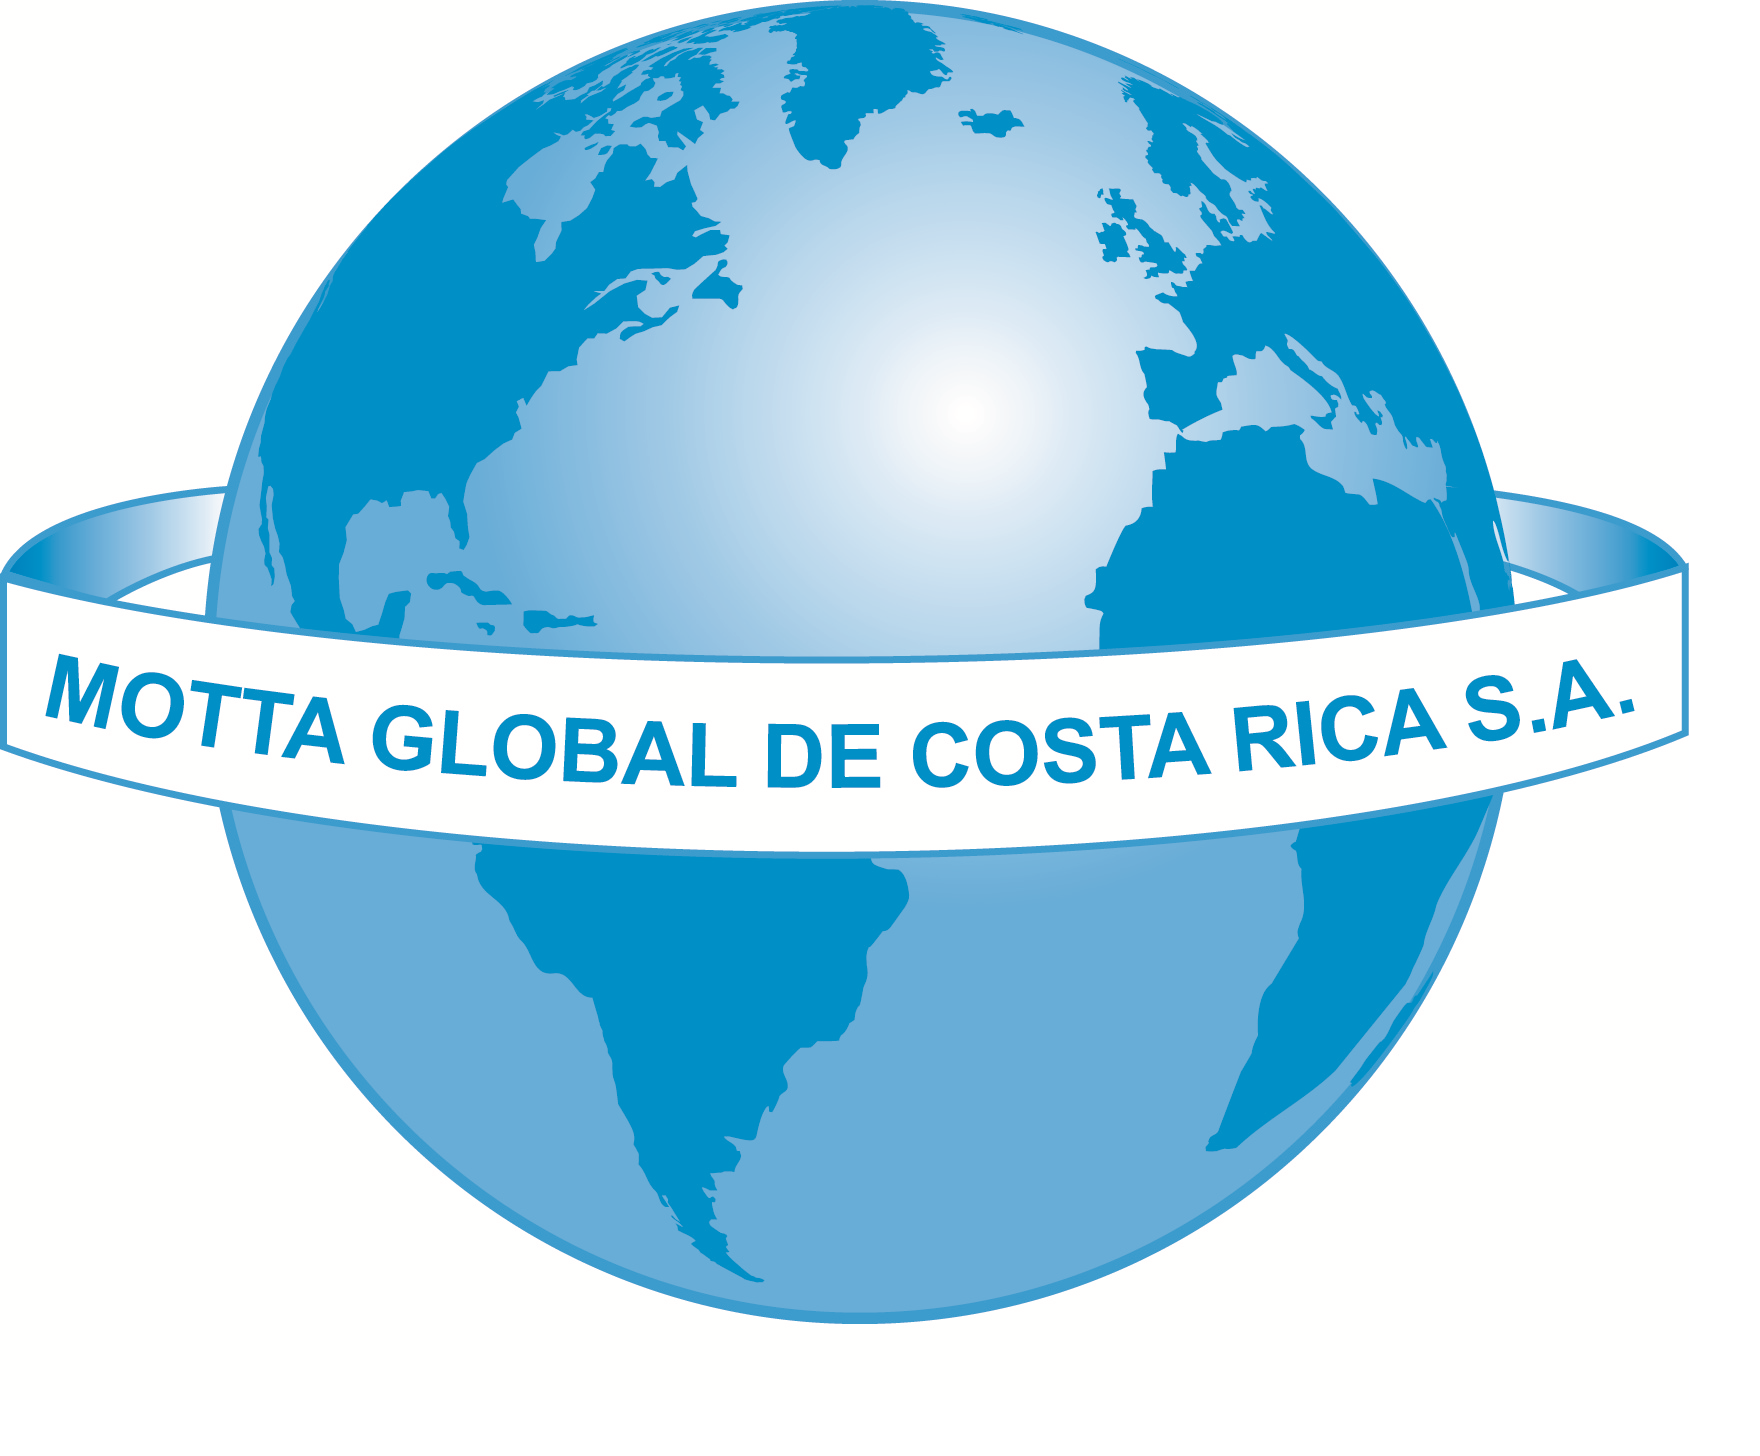 Motta Global De Costa Rica